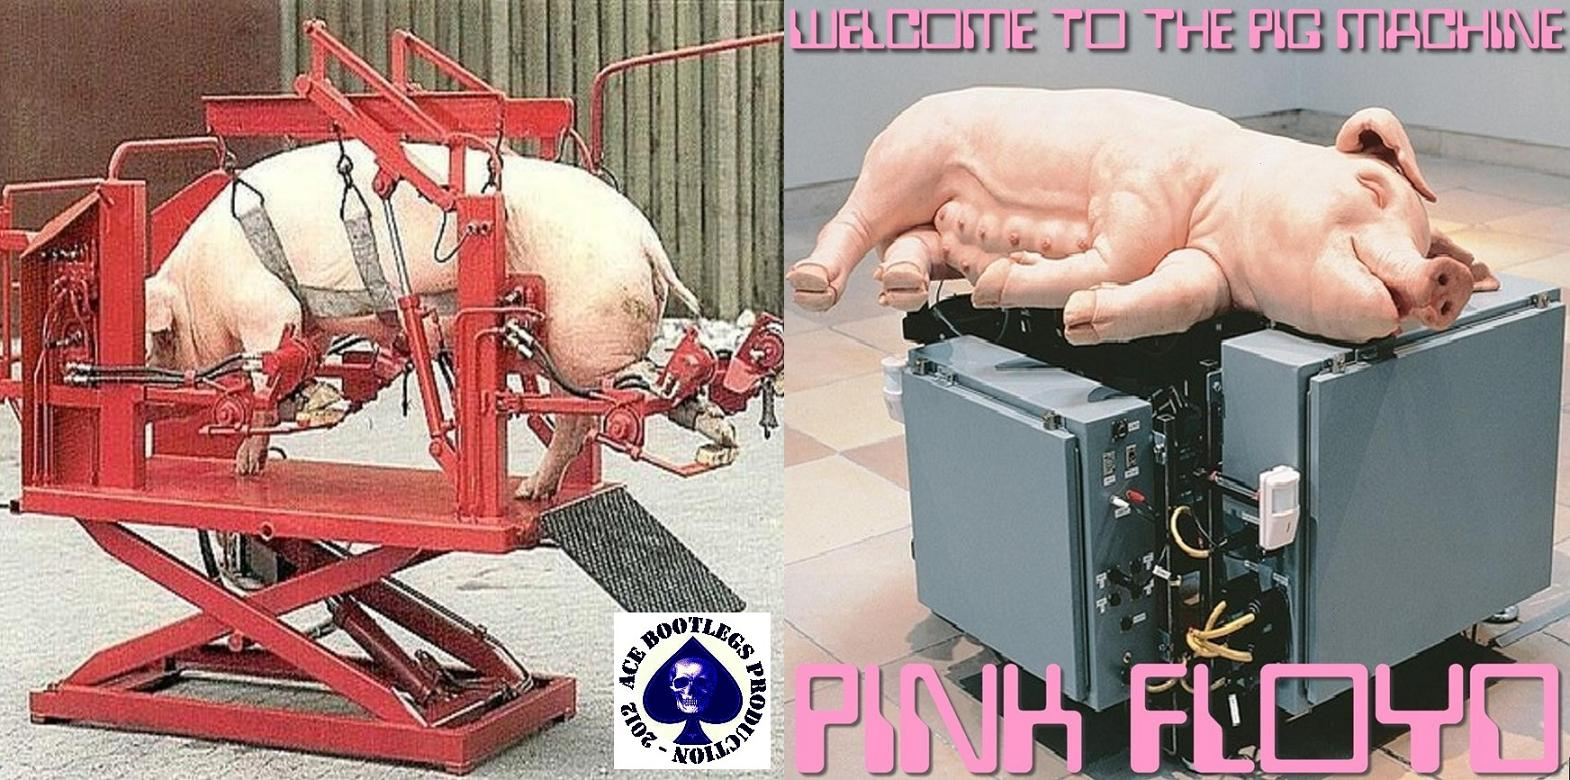 1977-02-25-Welcome_to_the_Pig_Machine-front